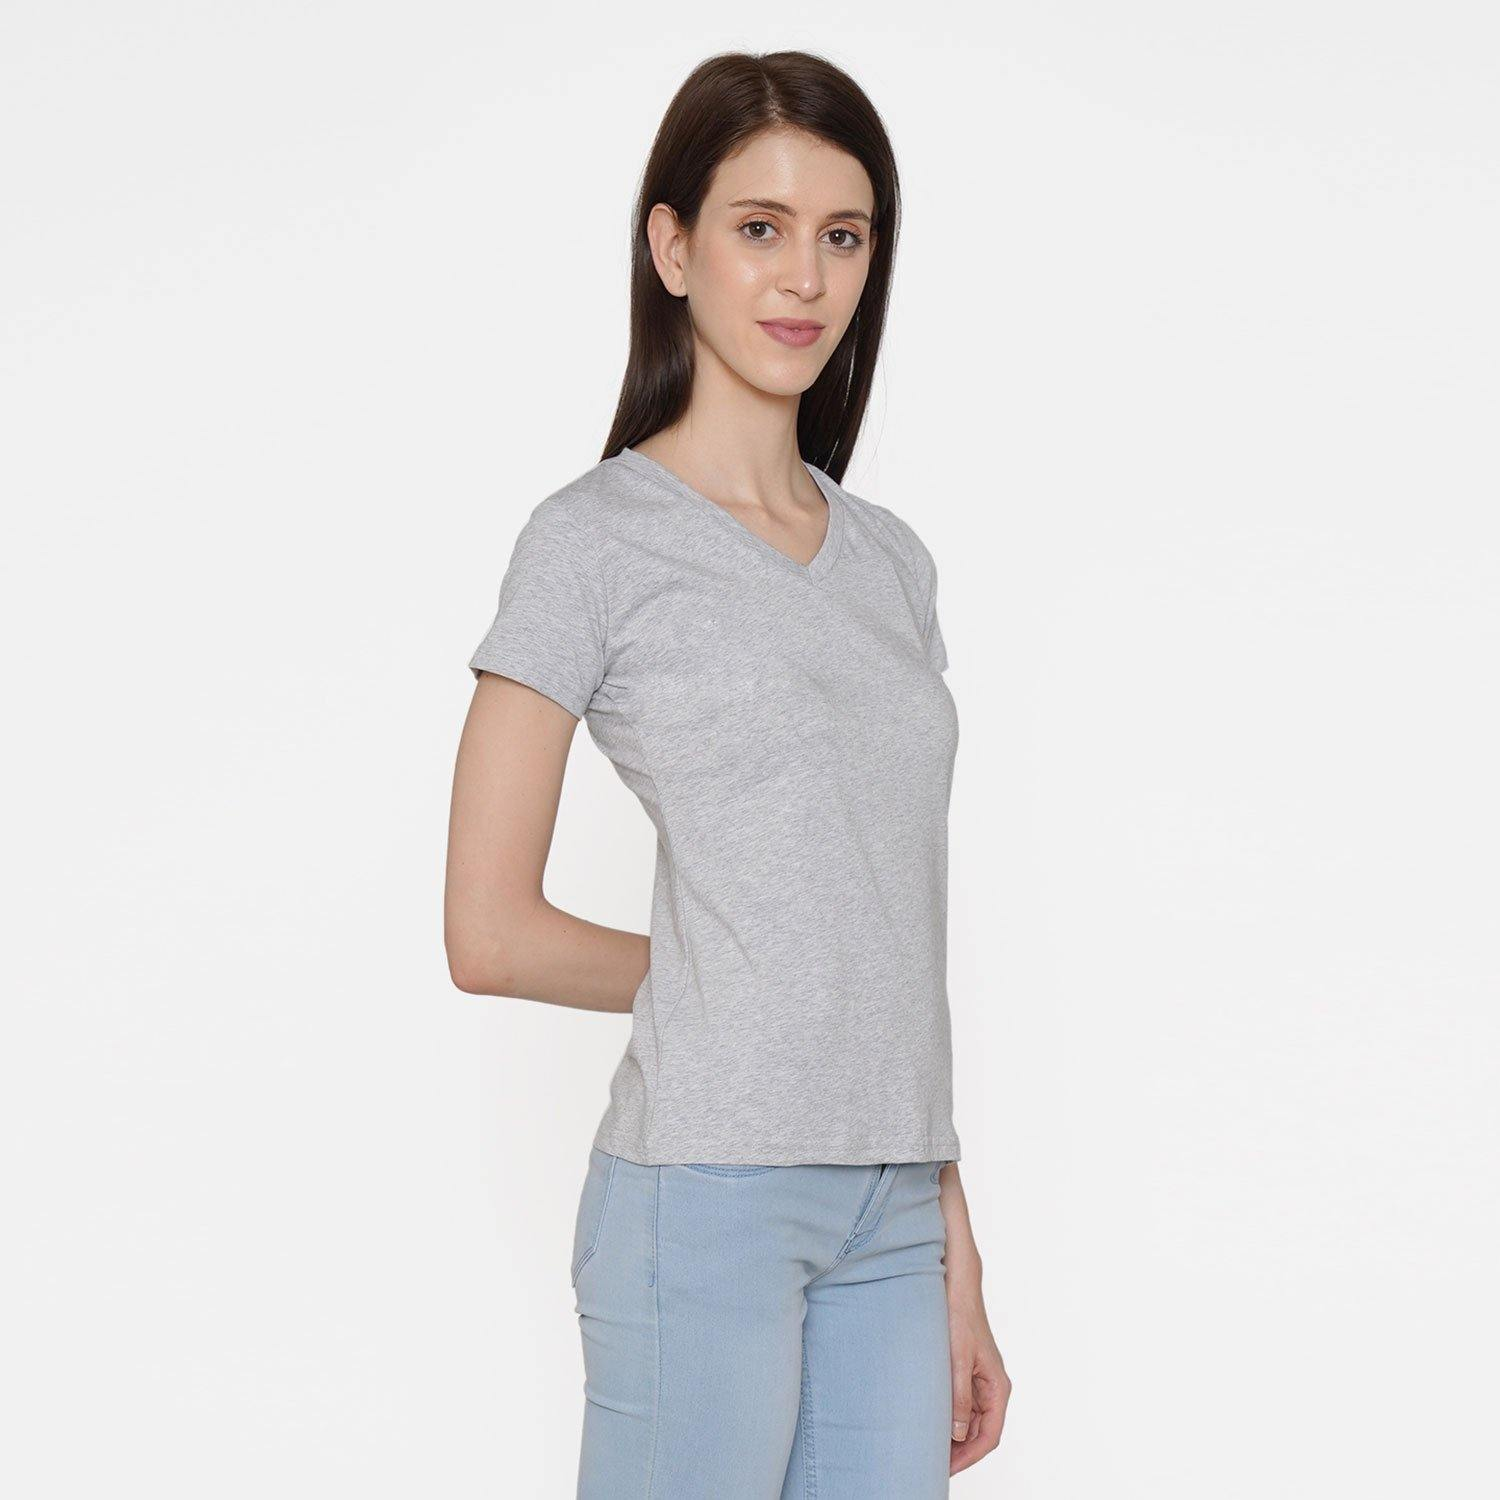 Plain Casual Half Sleeve Women's T-Shirt For Summer - Light Grey